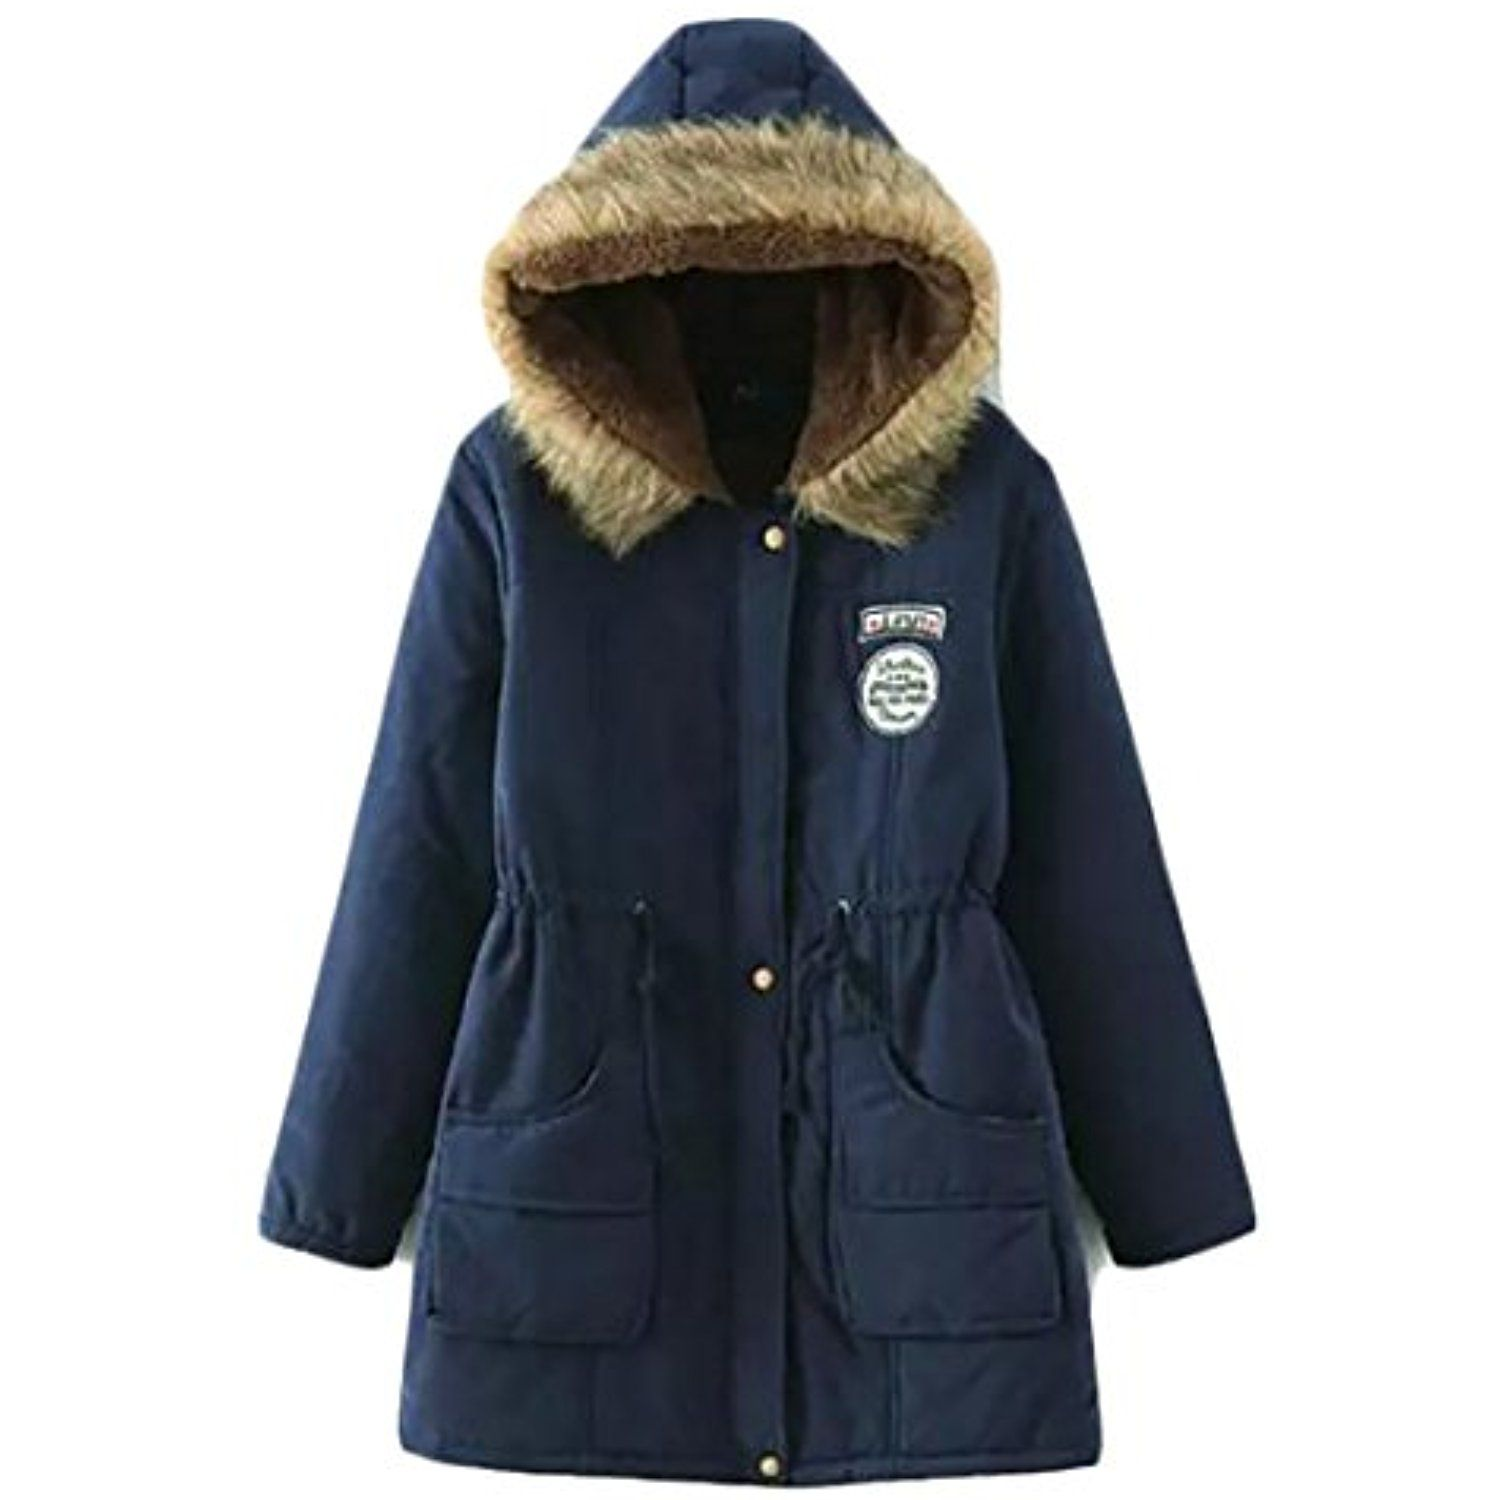 Womenus hoodie fleece zip up warm loose outdoor overcoat parka